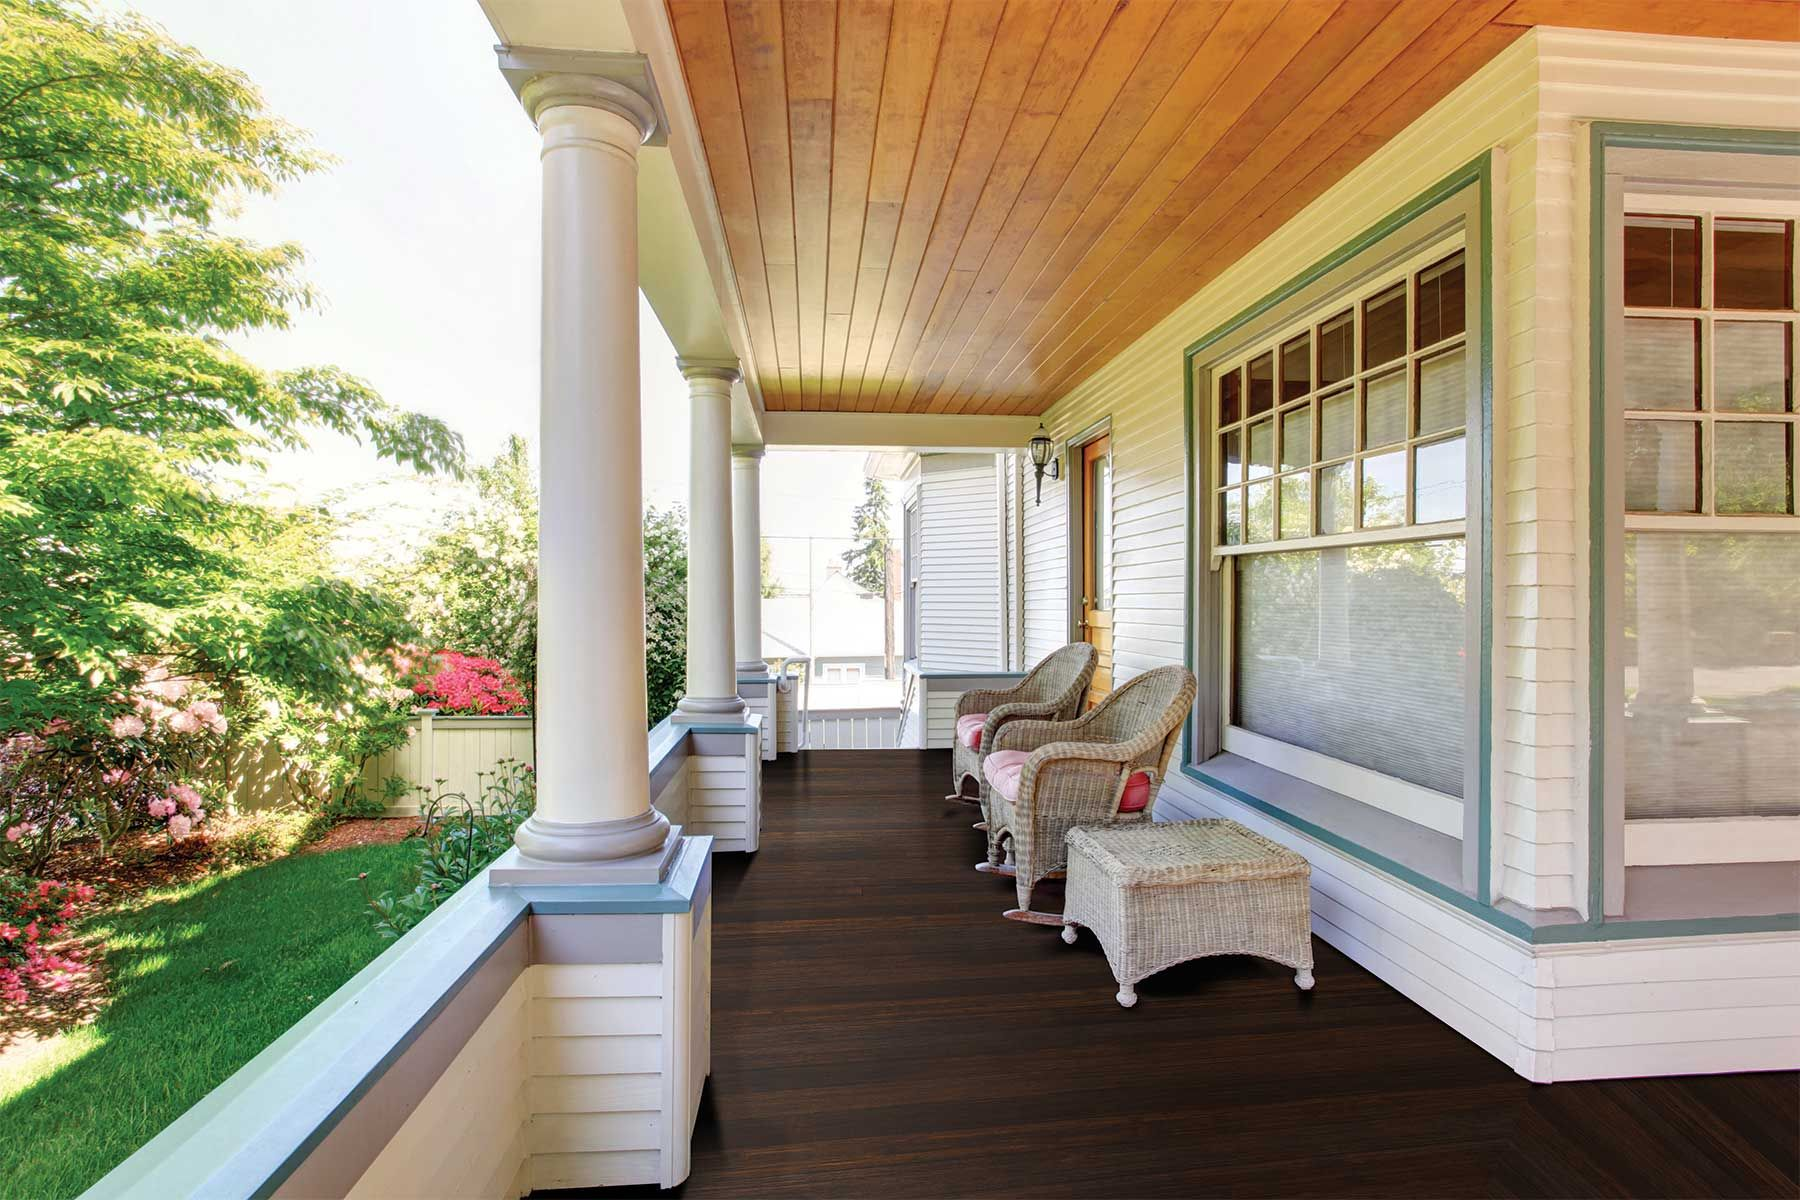 Classic Espresso 1x4 Porch Flooring T G Fused Bamboo Also For Interior Floors Craftsman Style Home Craftsman Porch Porch Flooring